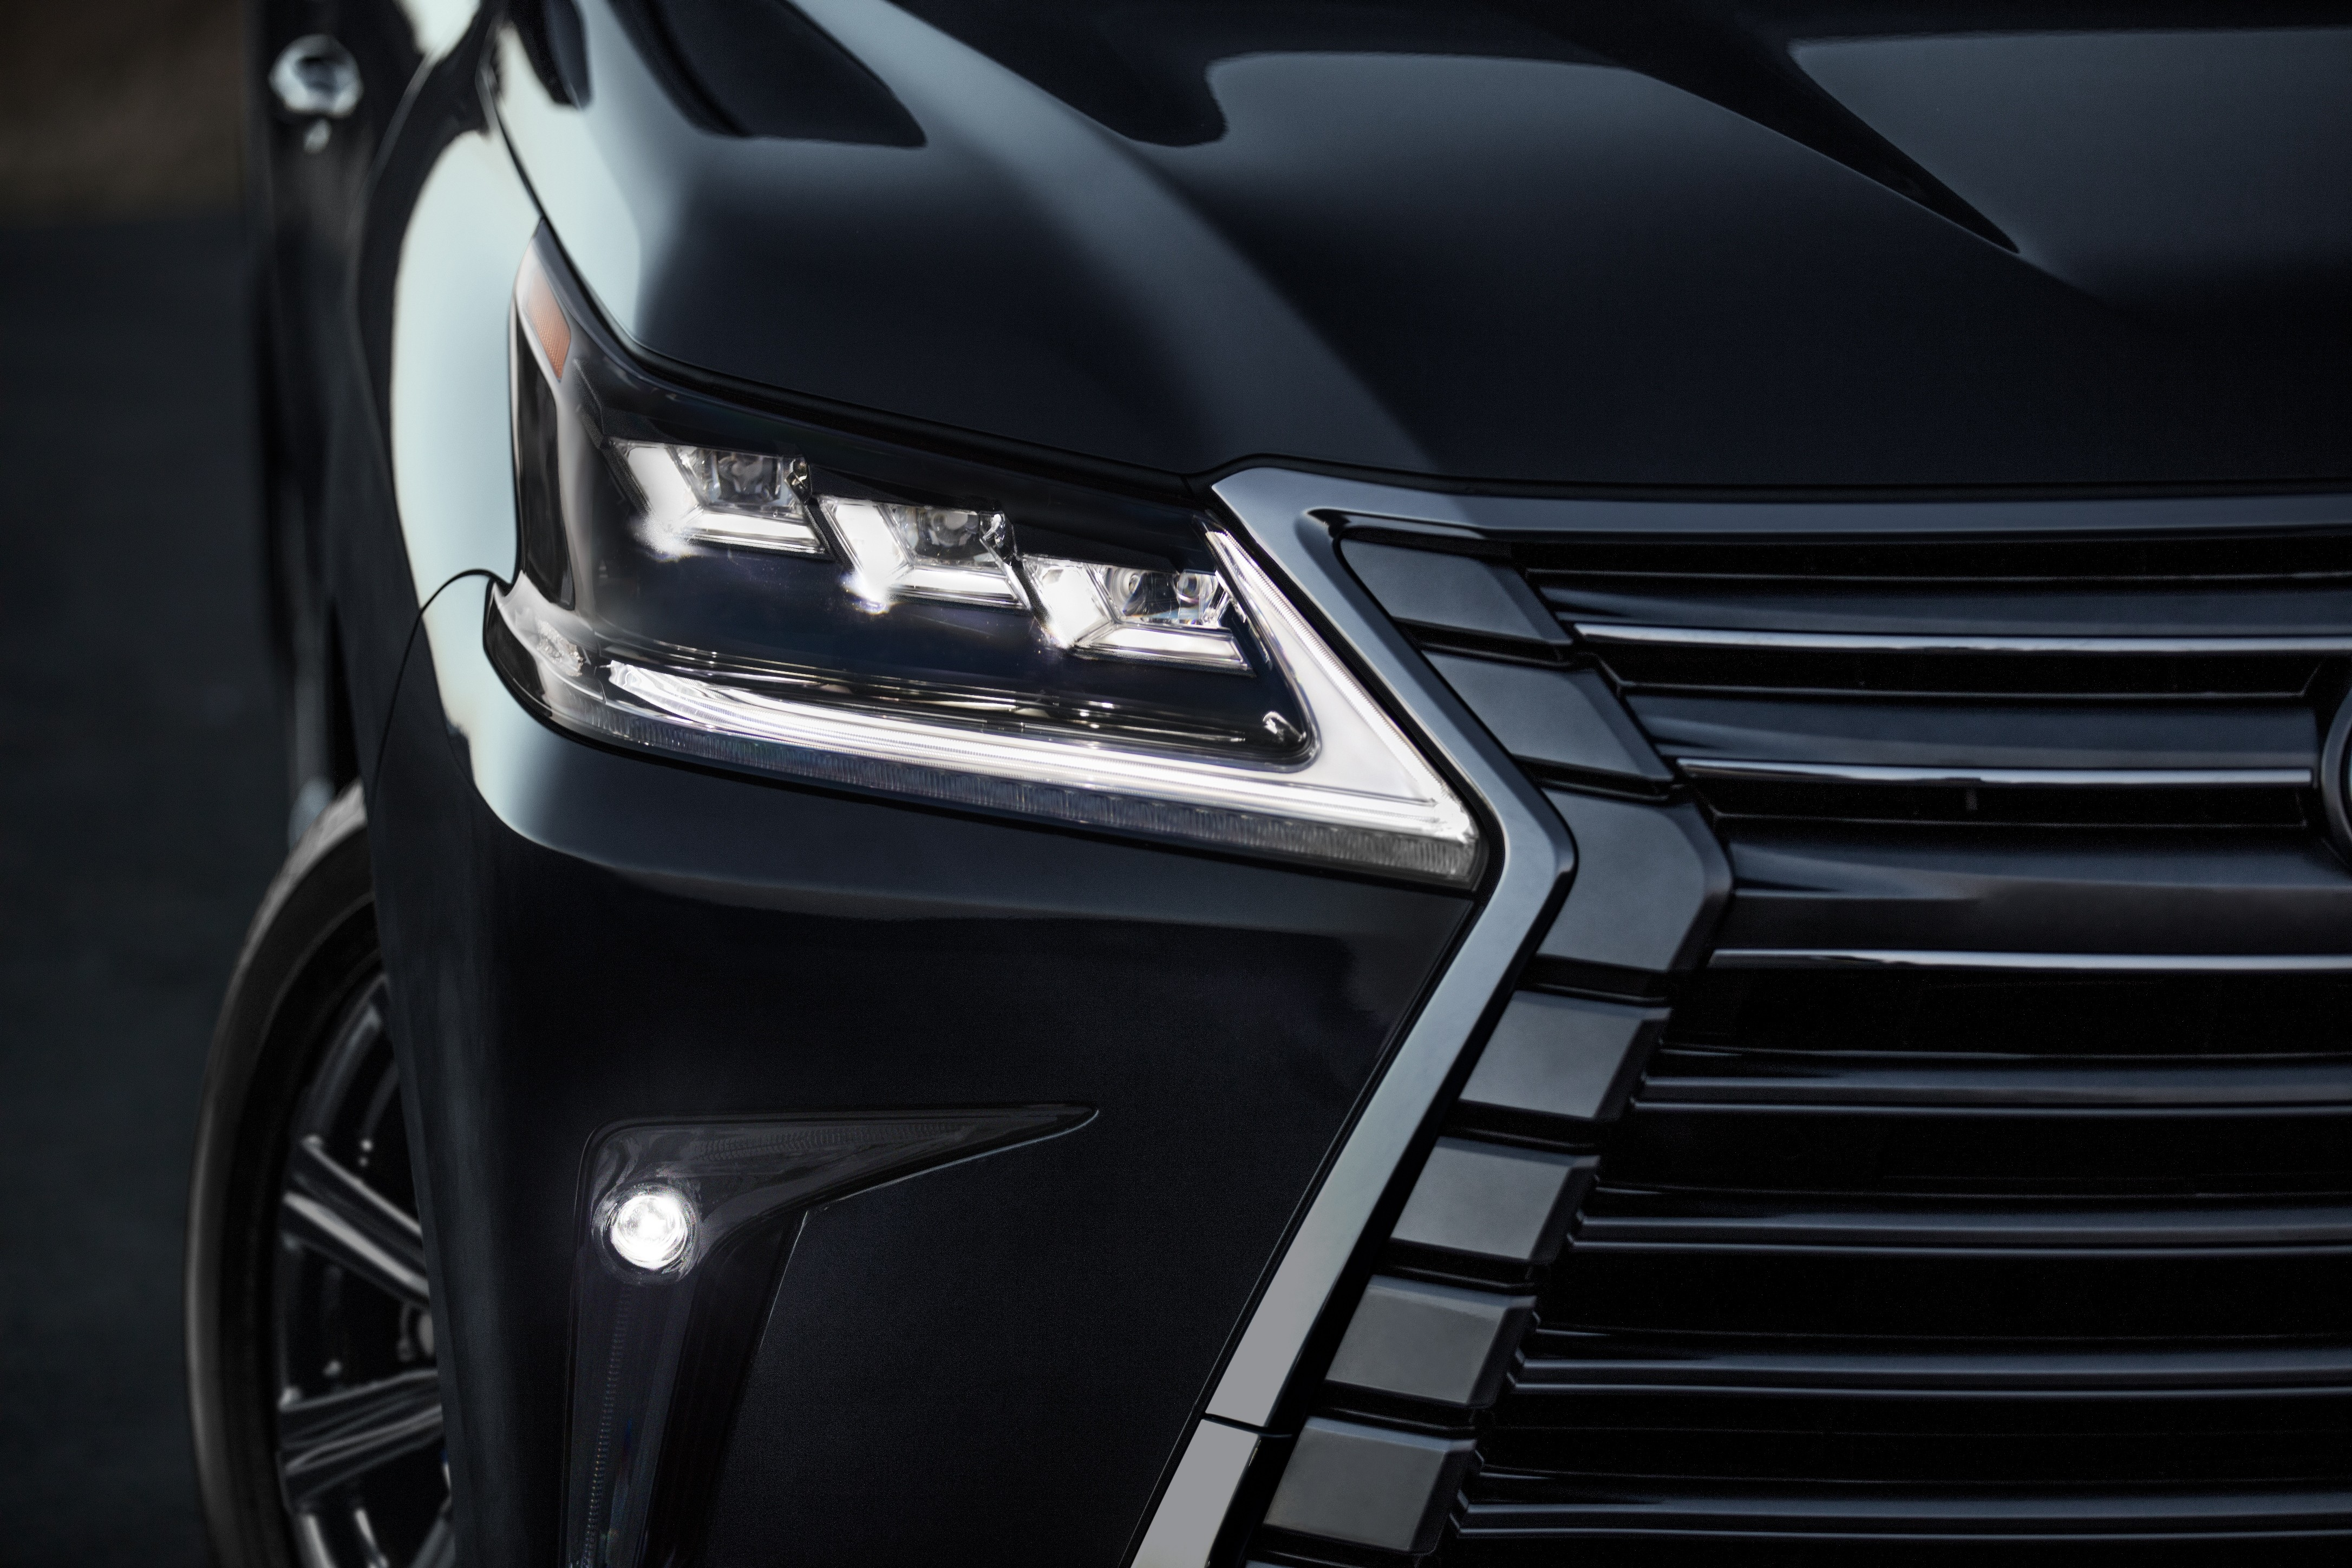 lexus updates lx 570 luxury suv with new options